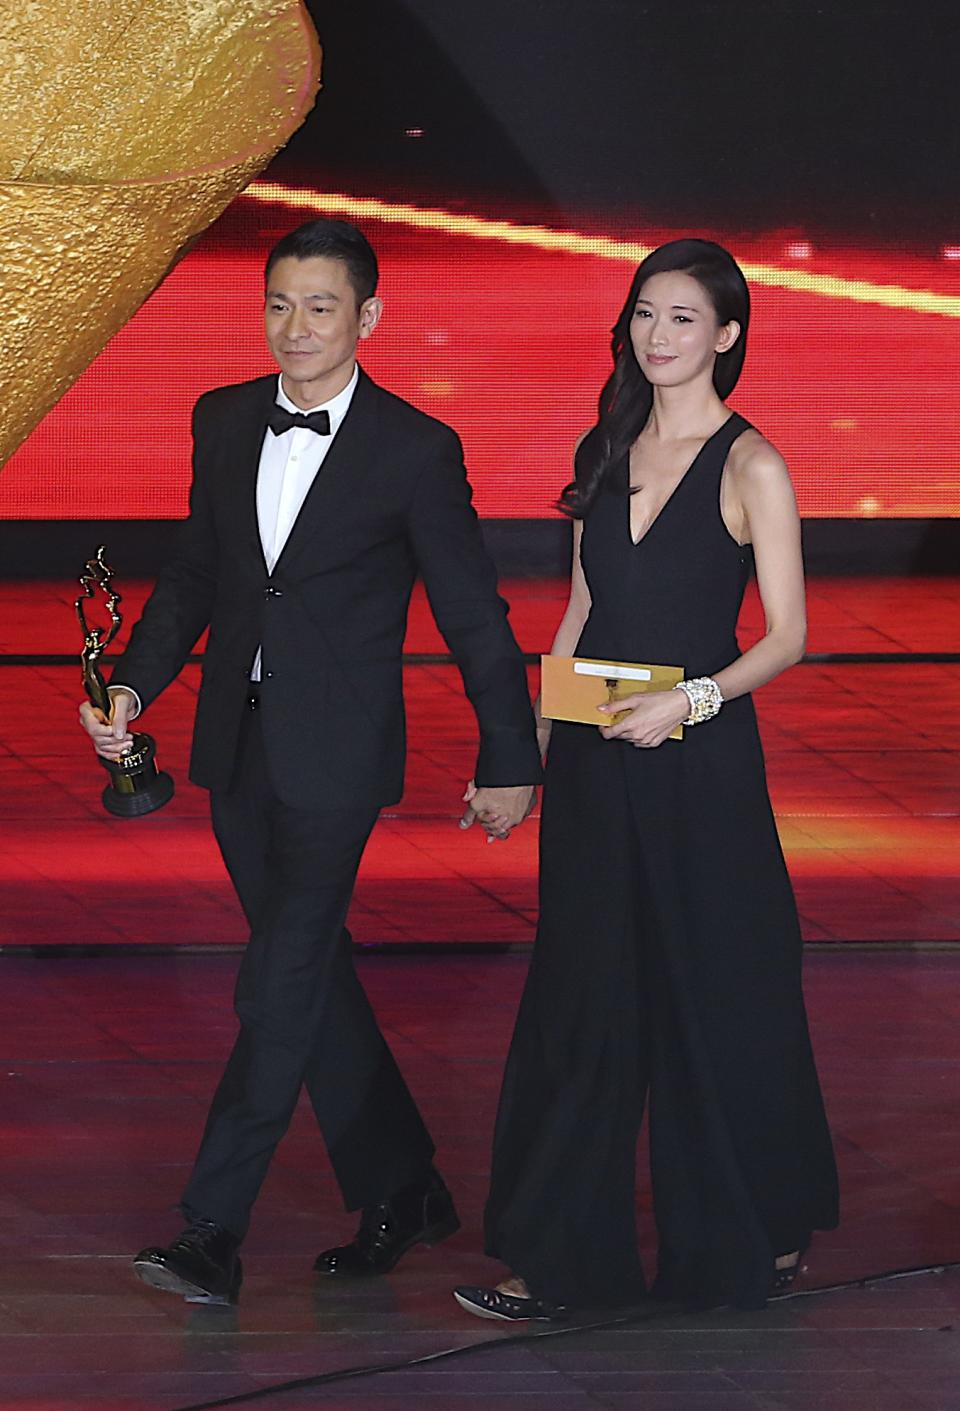 Hong Kong actor Andy Lau, left, walks with Taiwanese model Lin Chi-ling at the award ceremony for the Beijing Film Festival in Beijing Tuesday April 23, 2013.(AP Photo) CHINA OUT